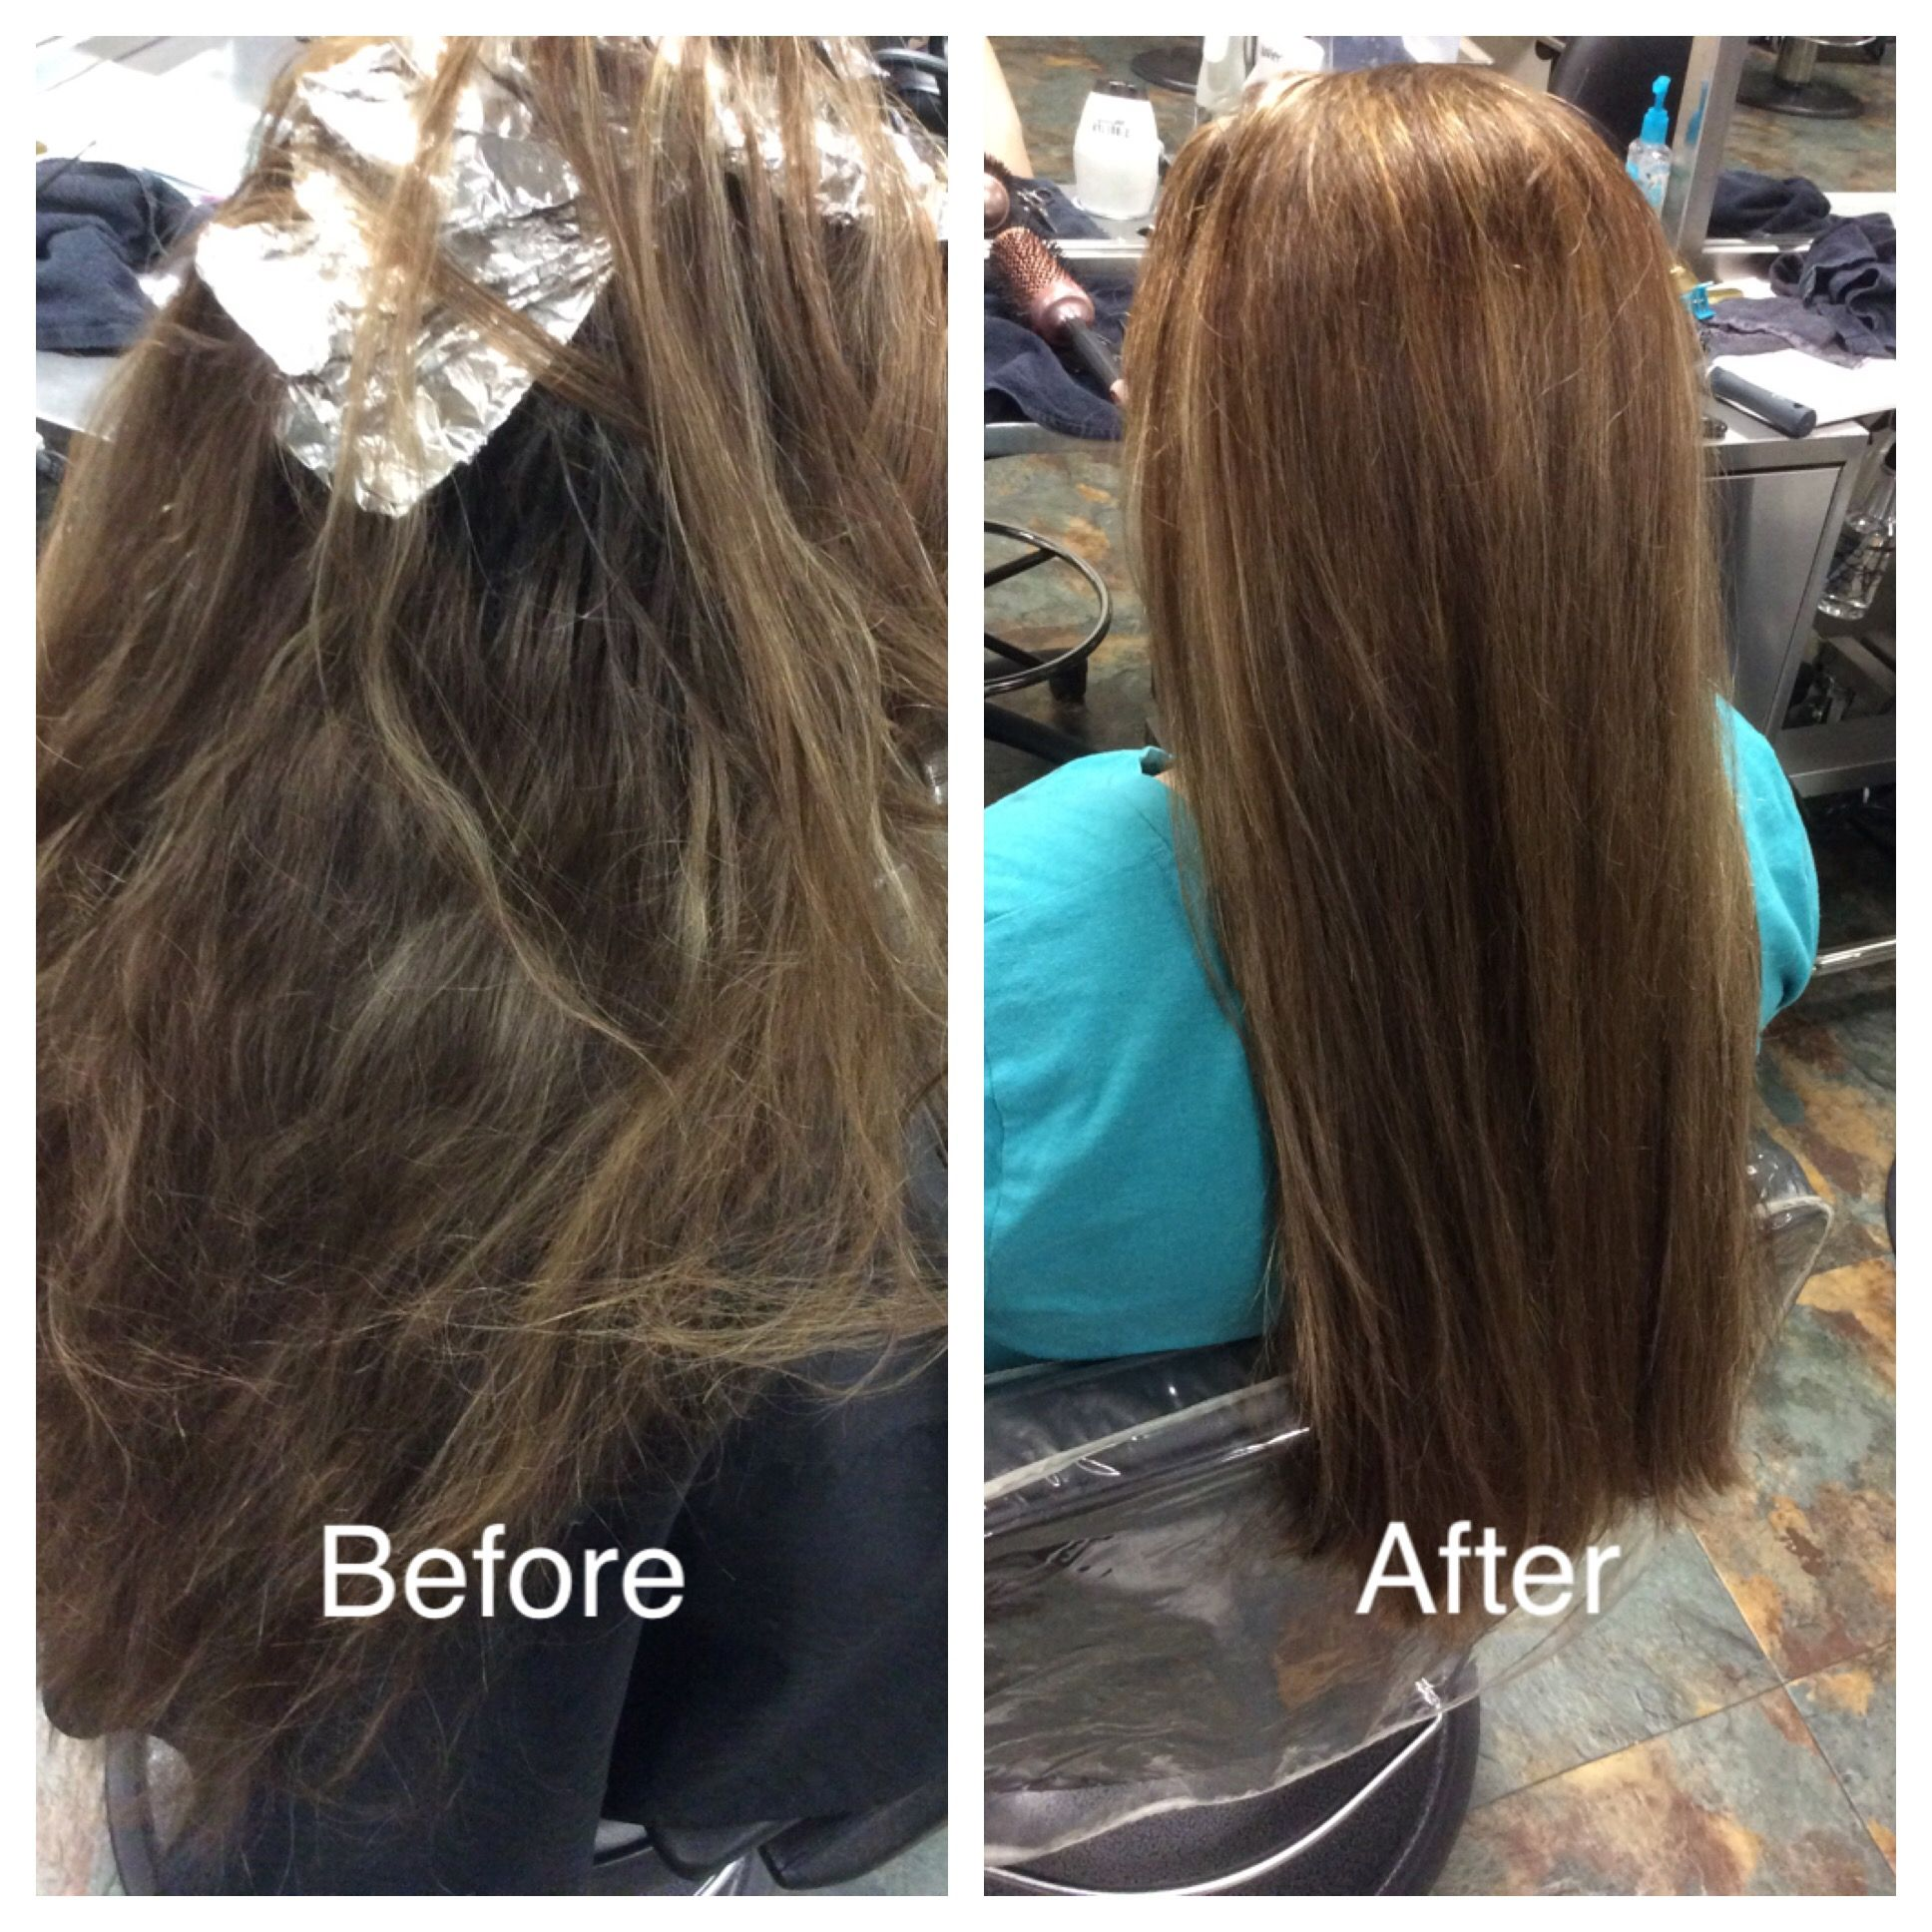 Root touch up using koleston perfect color and also baby lights root touch up using koleston perfect color and also baby lights using blondor 20 vol nvjuhfo Image collections